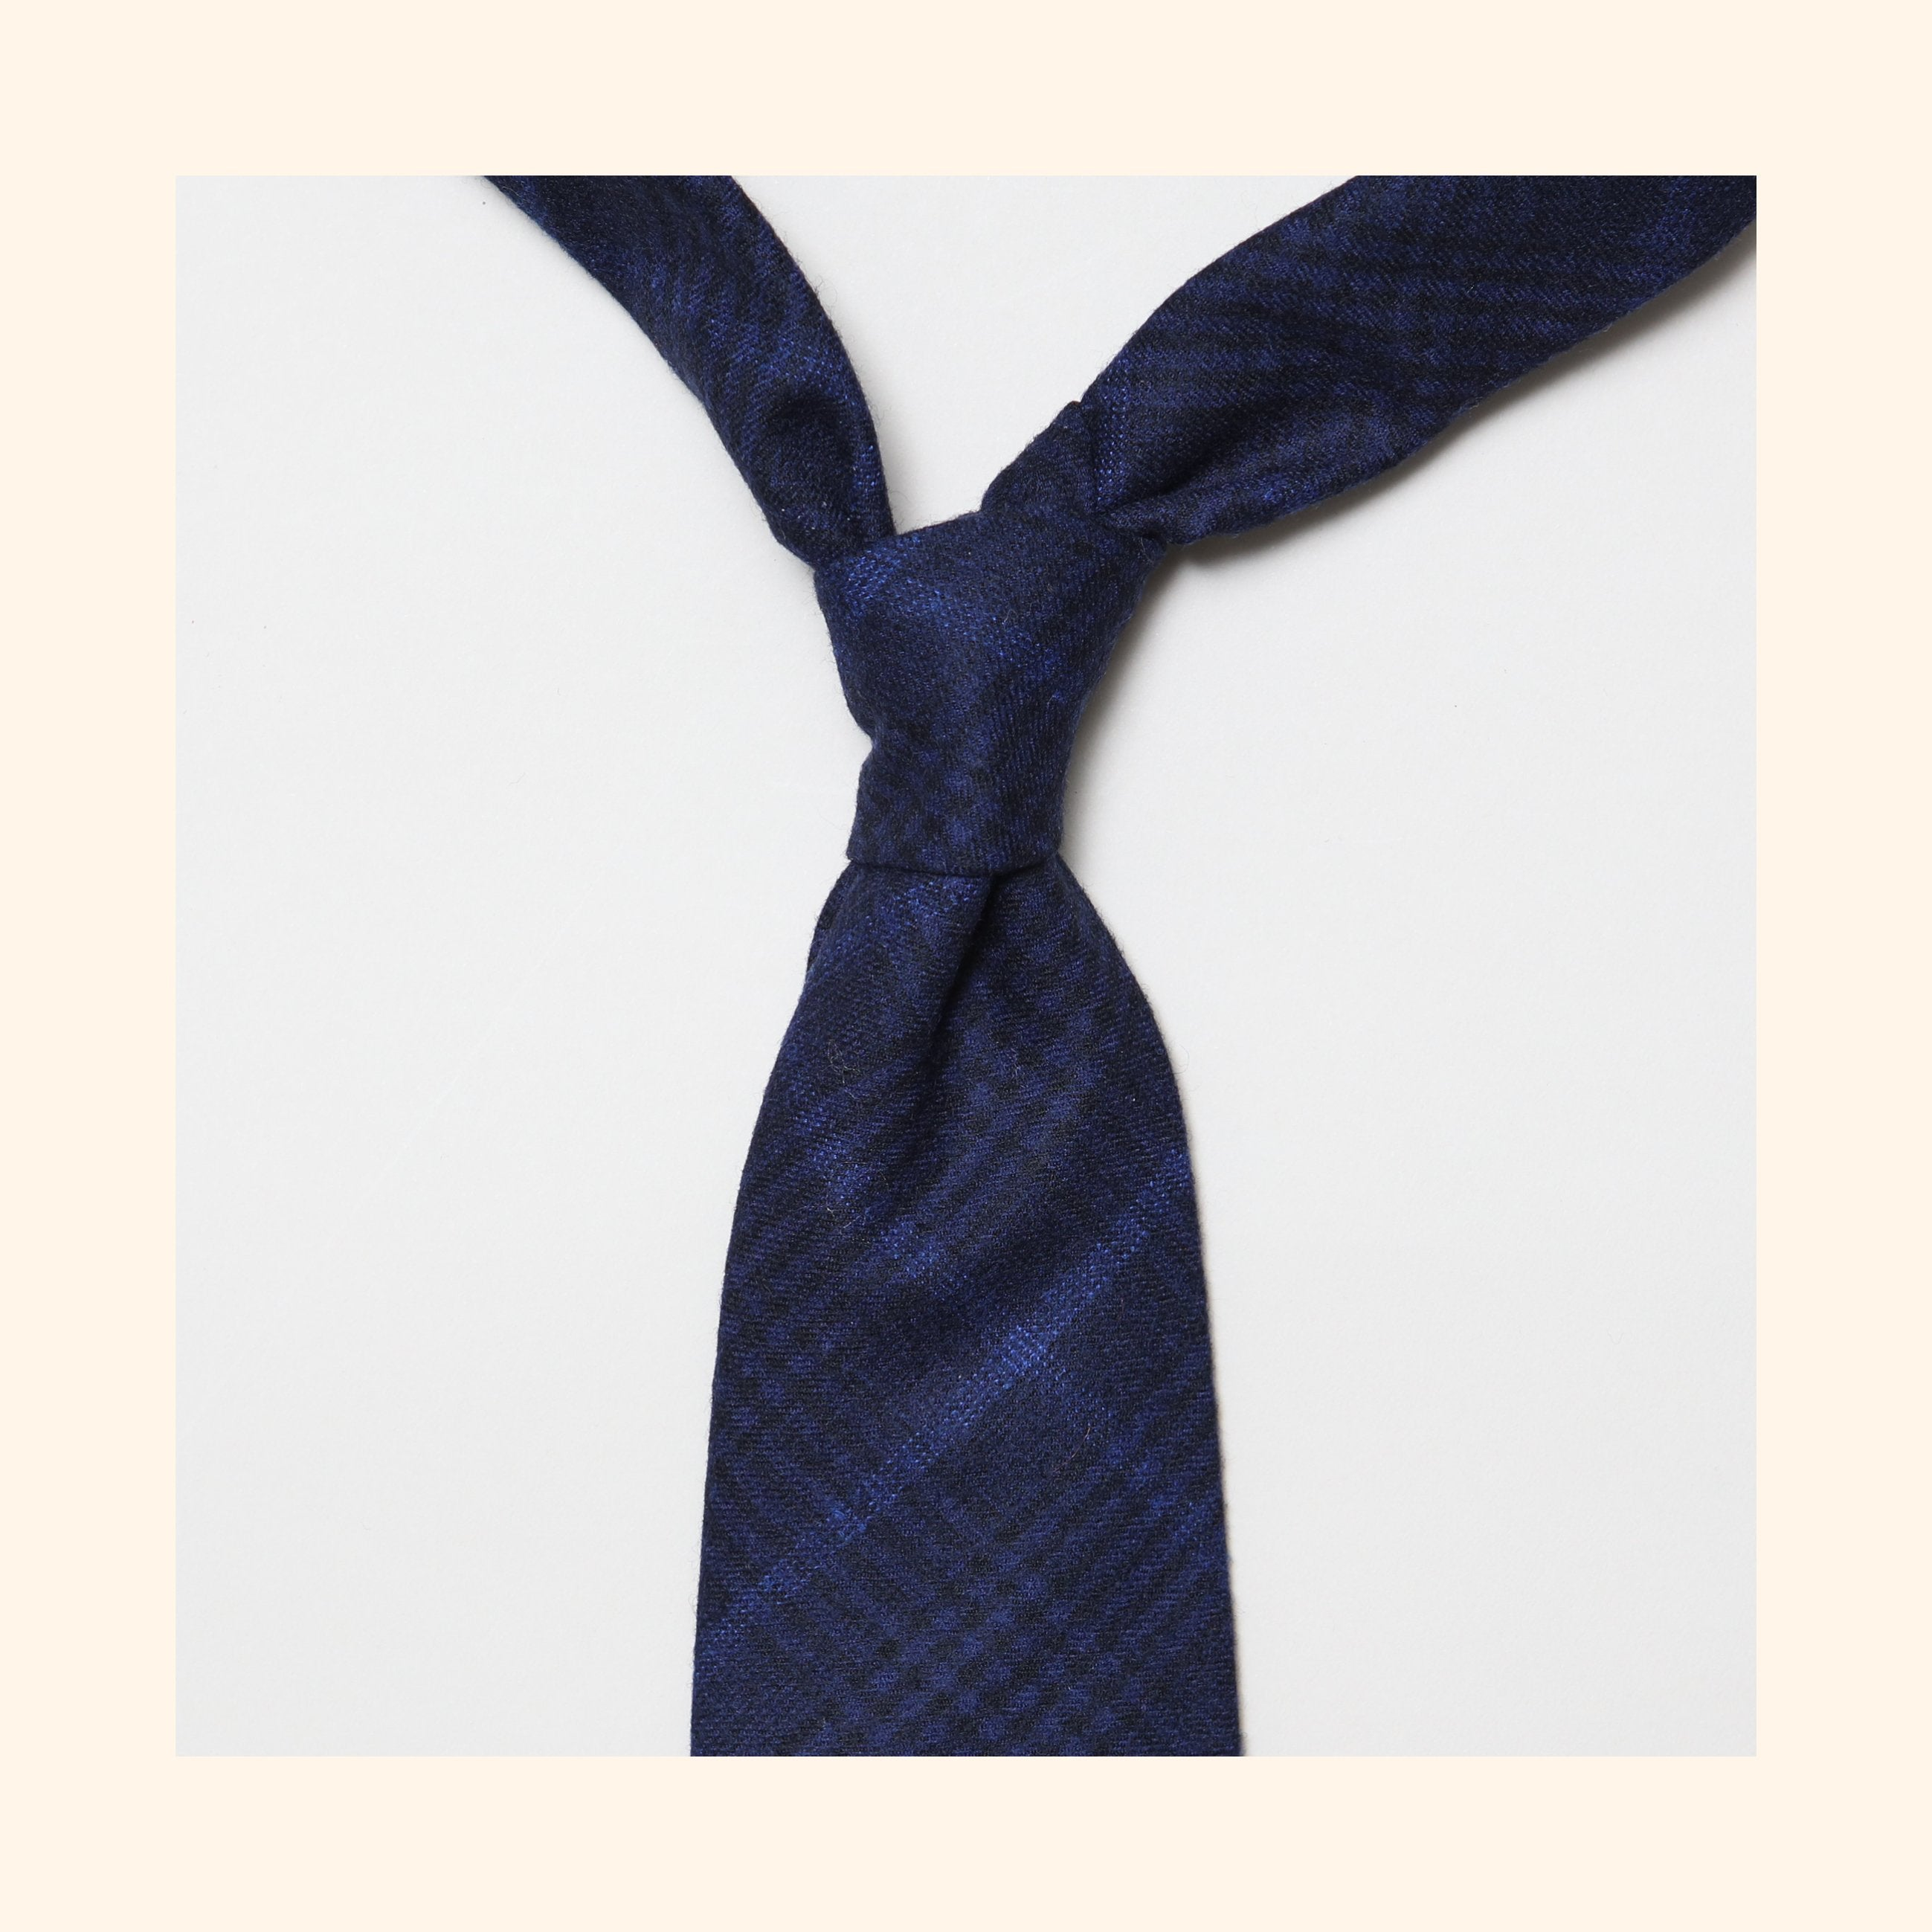 "â""– 155 - Fox Brothers Navy & Onyx Midnight Prince of Wales Glen Check Pure Wool Tie"